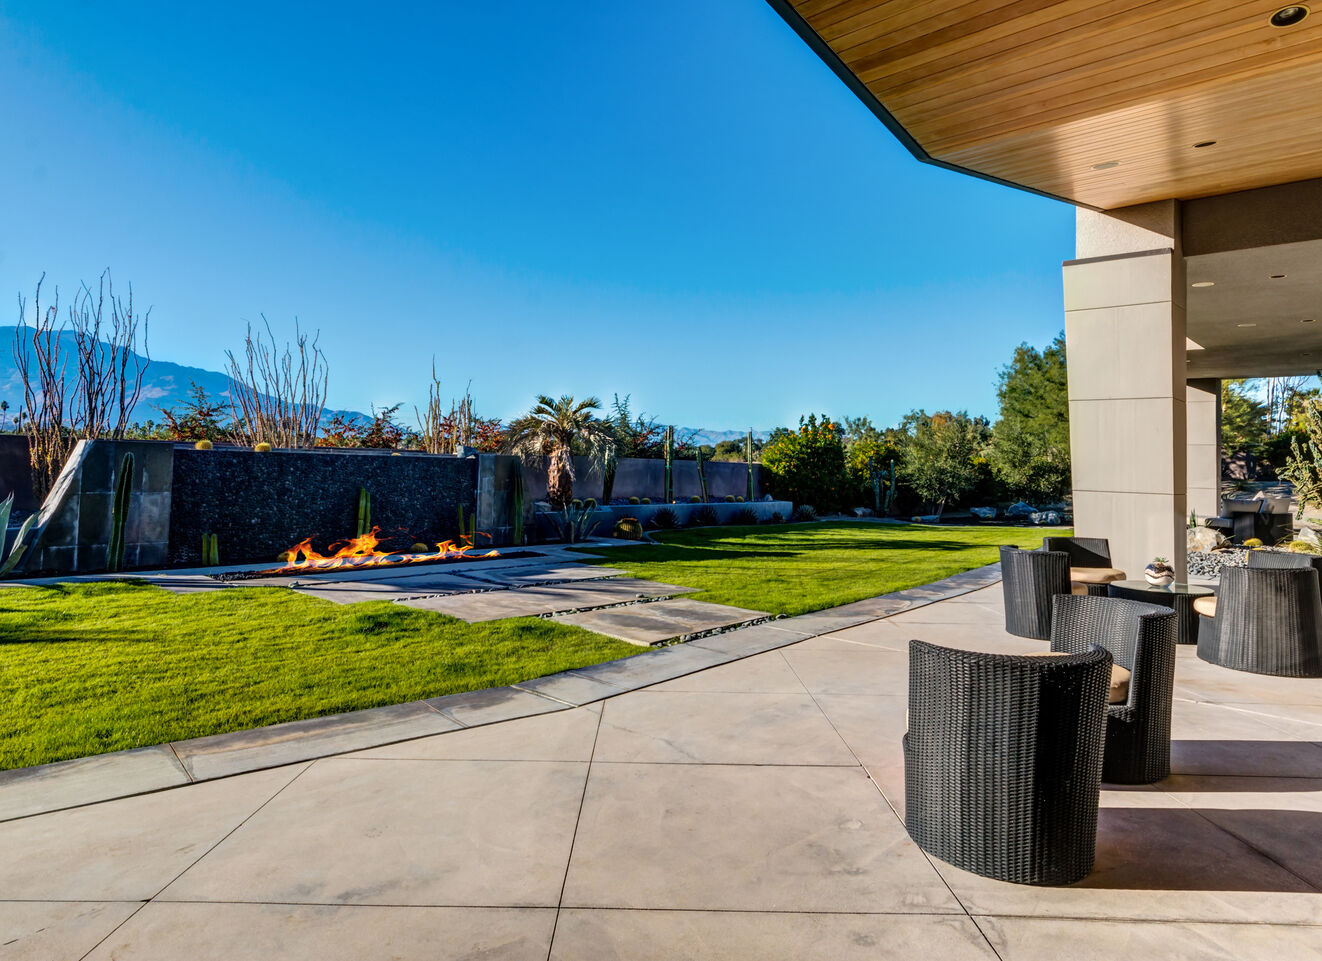 Outdoor Living Area & Fire Pit